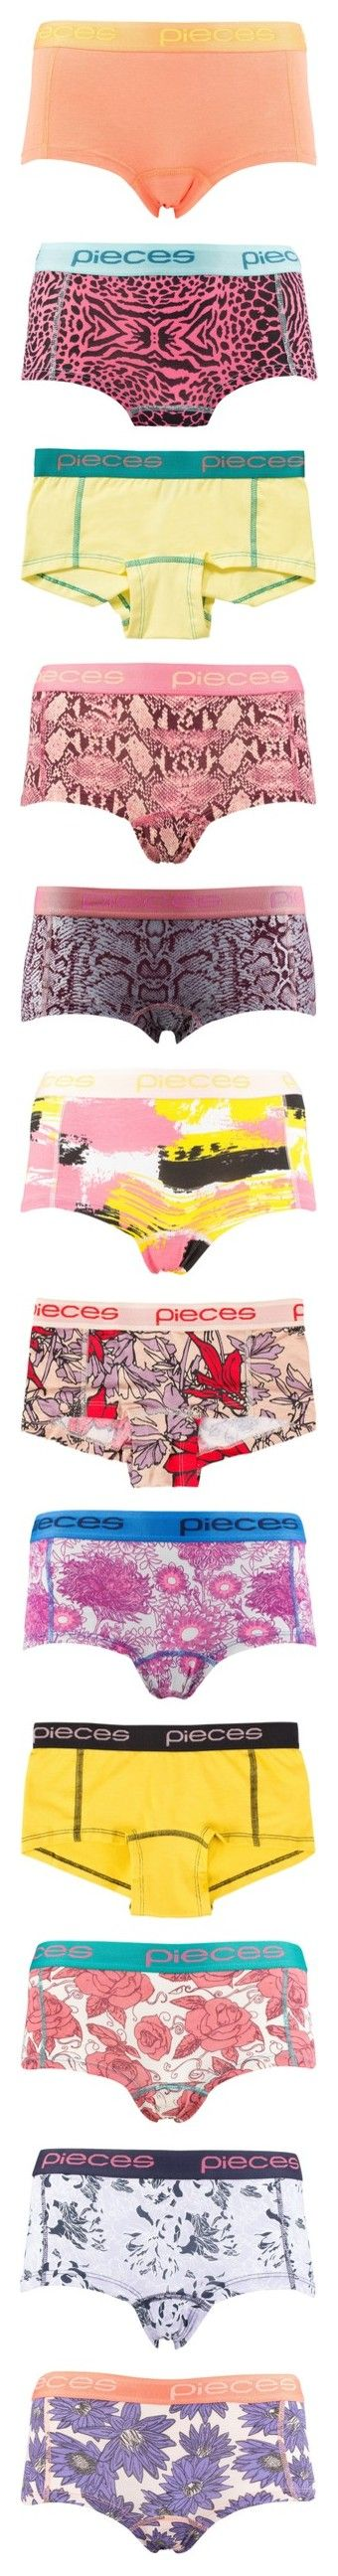 """""""Lady Boxers"""" by xoxominyeol ❤ liked on Polyvore featuring intimates, panties, briefs, coral, underwear, womens-fashion, underwear boxers, underwear thong, short boxers and hot pink"""